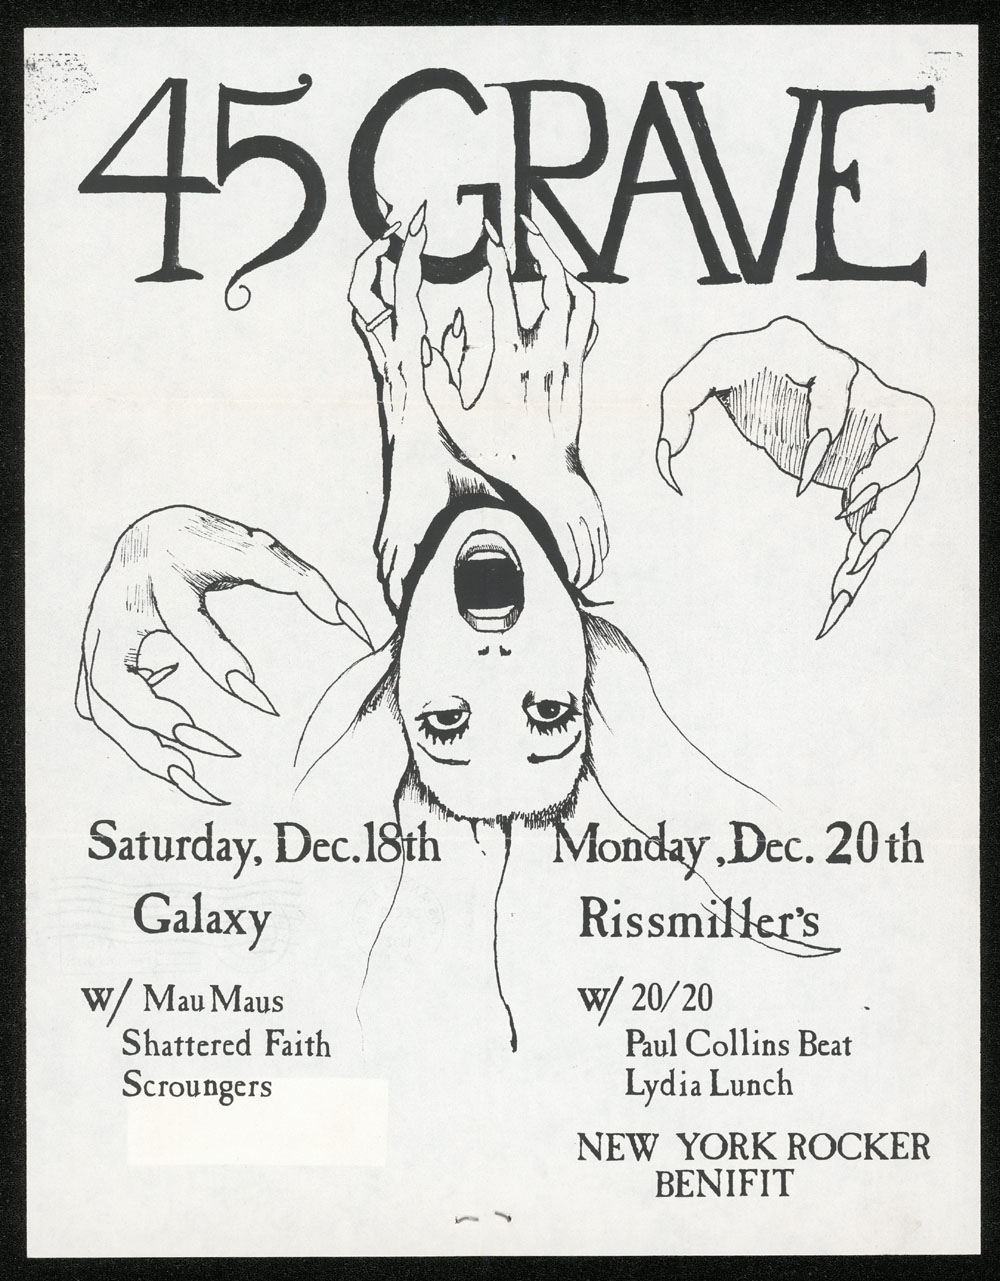 45 GRAVE w/ Mau Maus, Shattered Faith, Scroungers + w/ Lydia Lunch, Paul Collins Beat, 20/20